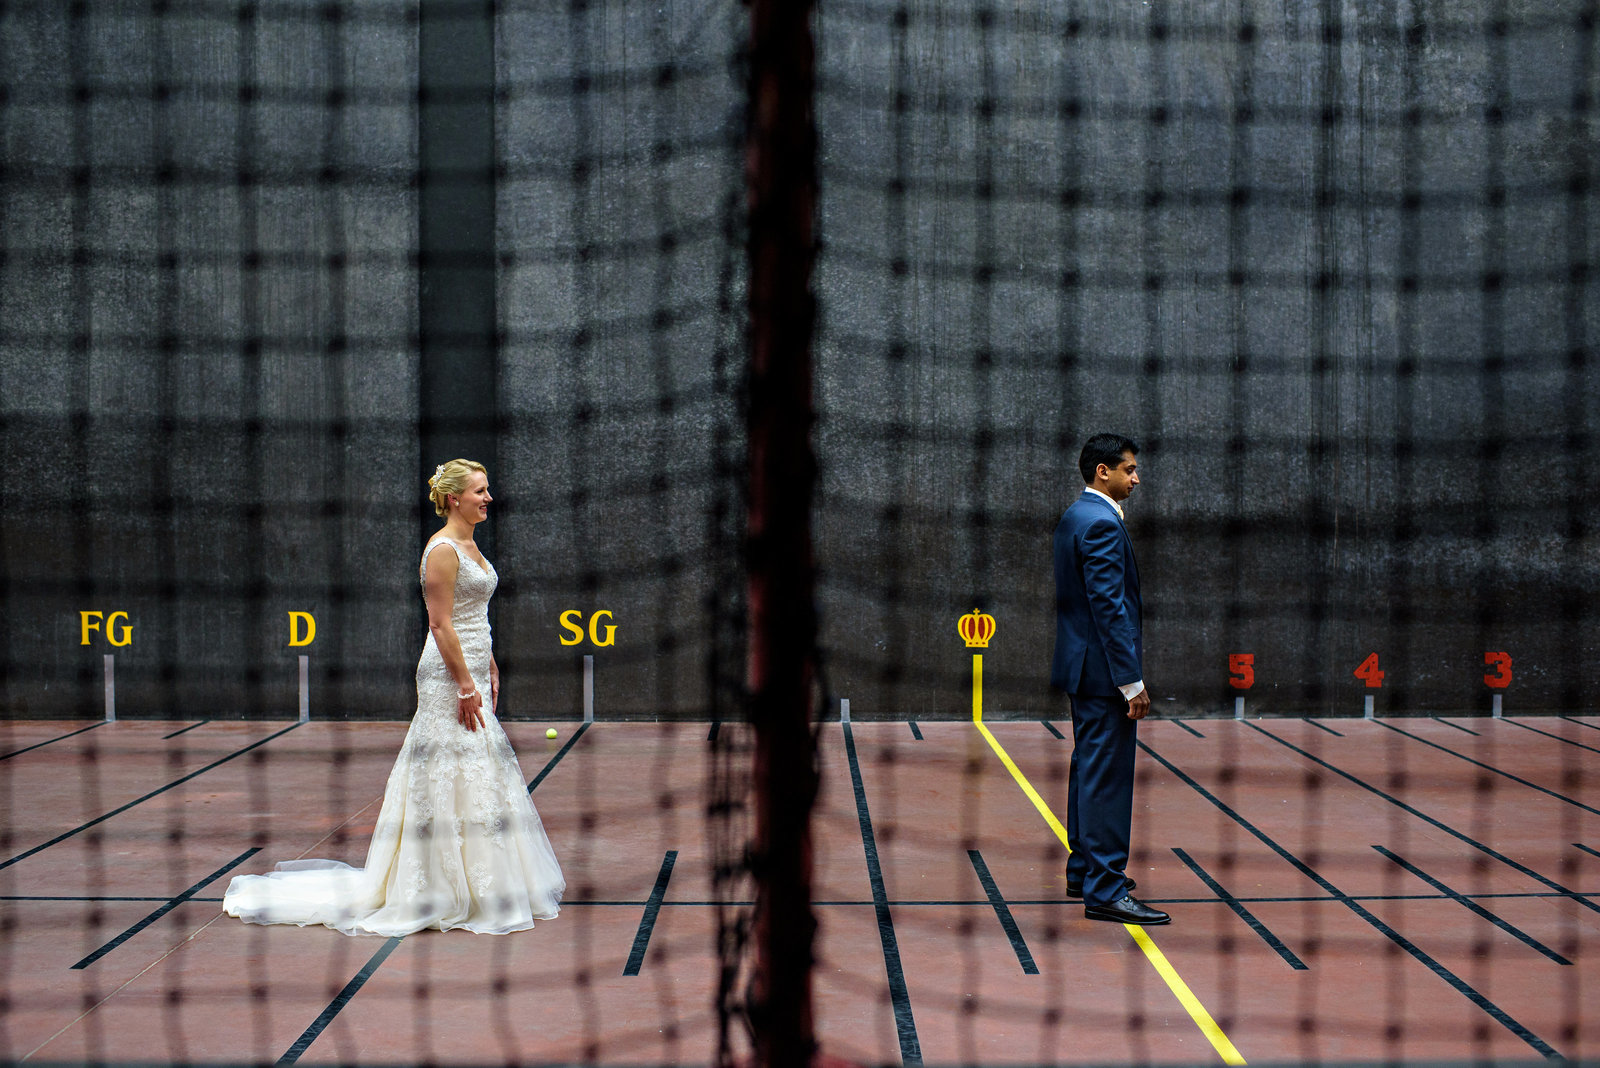 A bride and groom have their first look on an inside tennis court before their wedding.